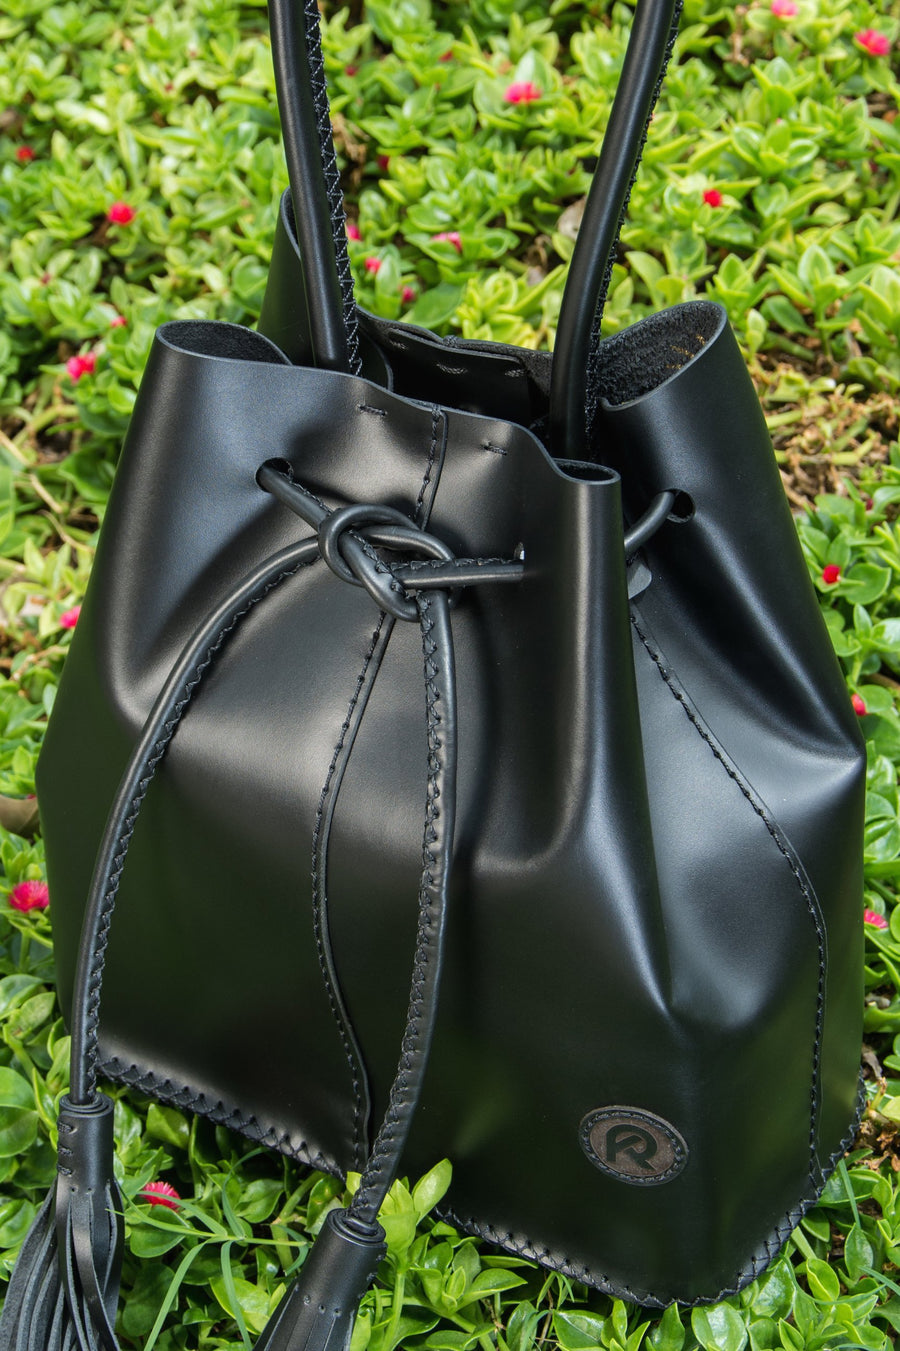 Bella Pizzaz Black Bucket Bag - Handbag Charms  - Handbag THEMAKERWORLD TheMakerWorld